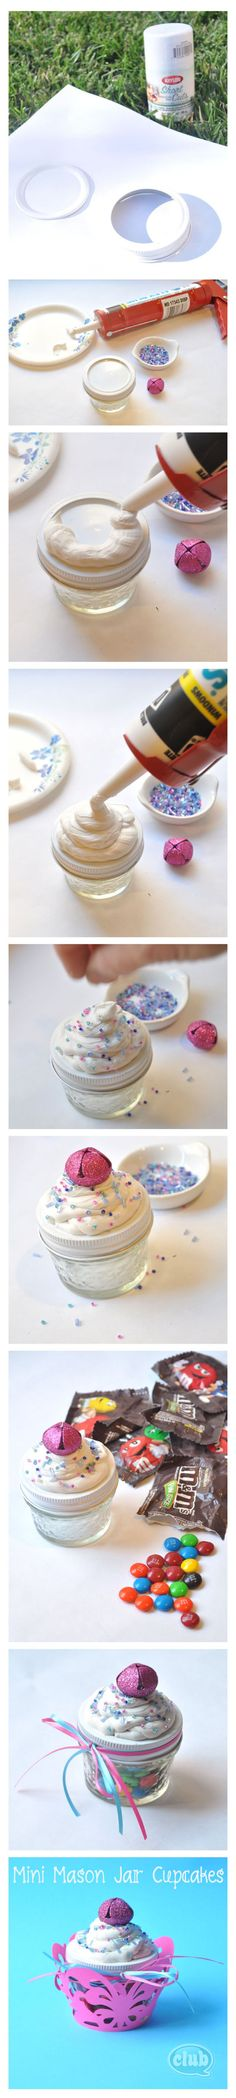 Mini Mason Jar Candy Cupcakes DIY craft using caulk and beads. So cute.